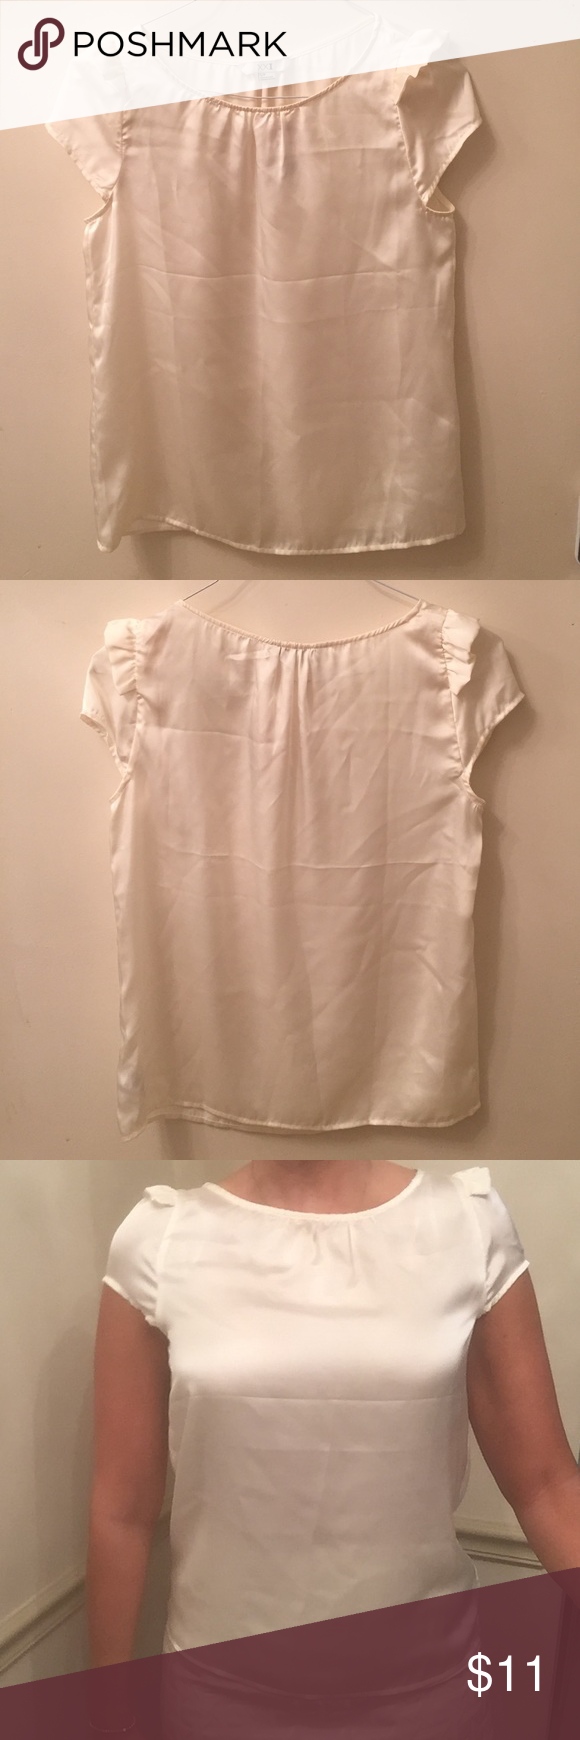 """White blouse 100% polyester shirt. Length from shoulders 24.5"""" NWT. Never worn (except in the picture). Pictured on me (5'9') great condition. Forever 21 Tops Blouses"""